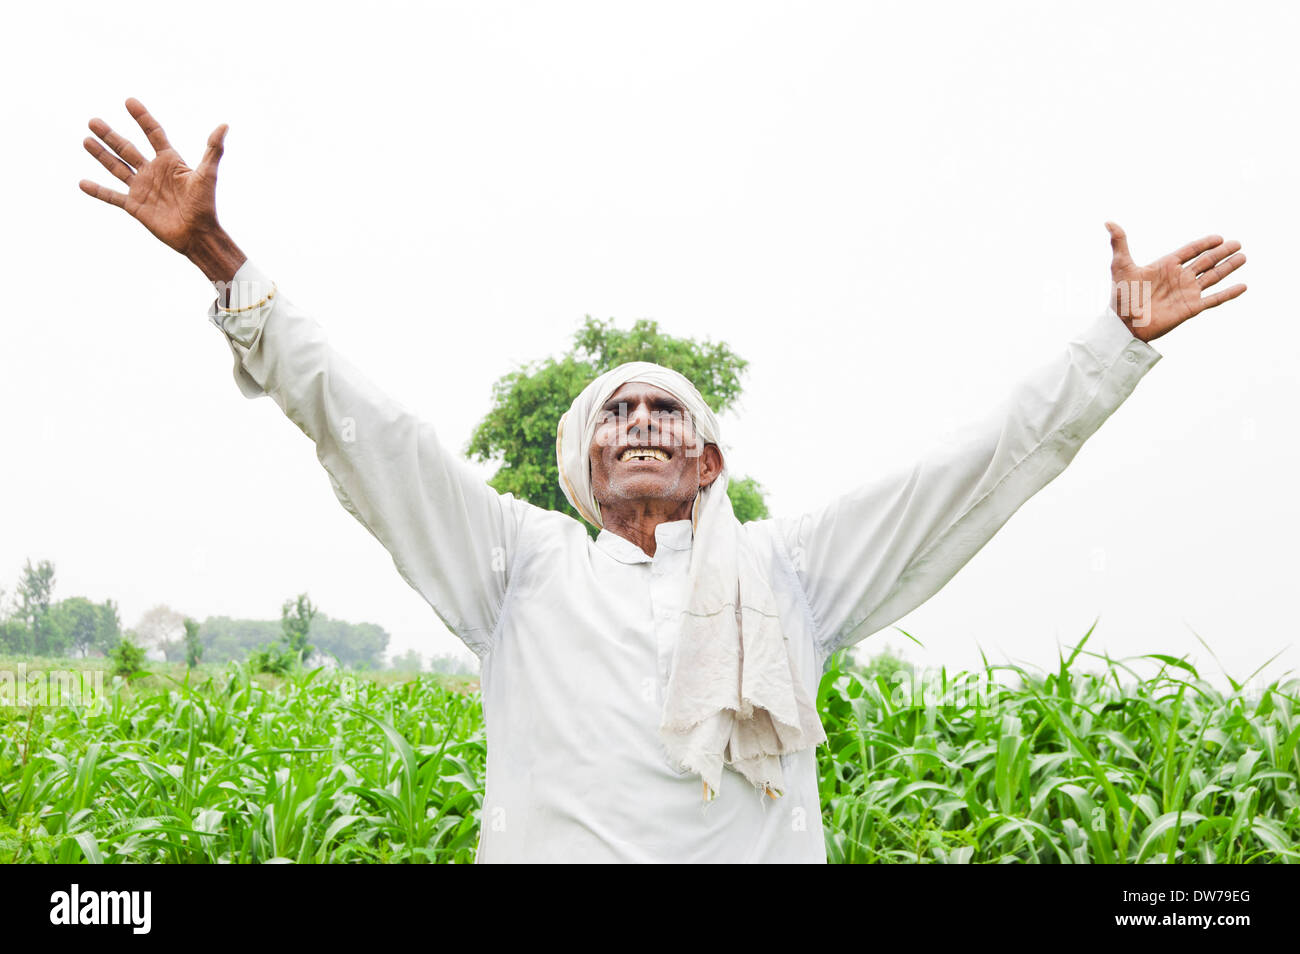 farmer hindu single men Eharmony is more than online dating meet singles prescreened for compatibility instead of just browsing personals review your matches for free now.